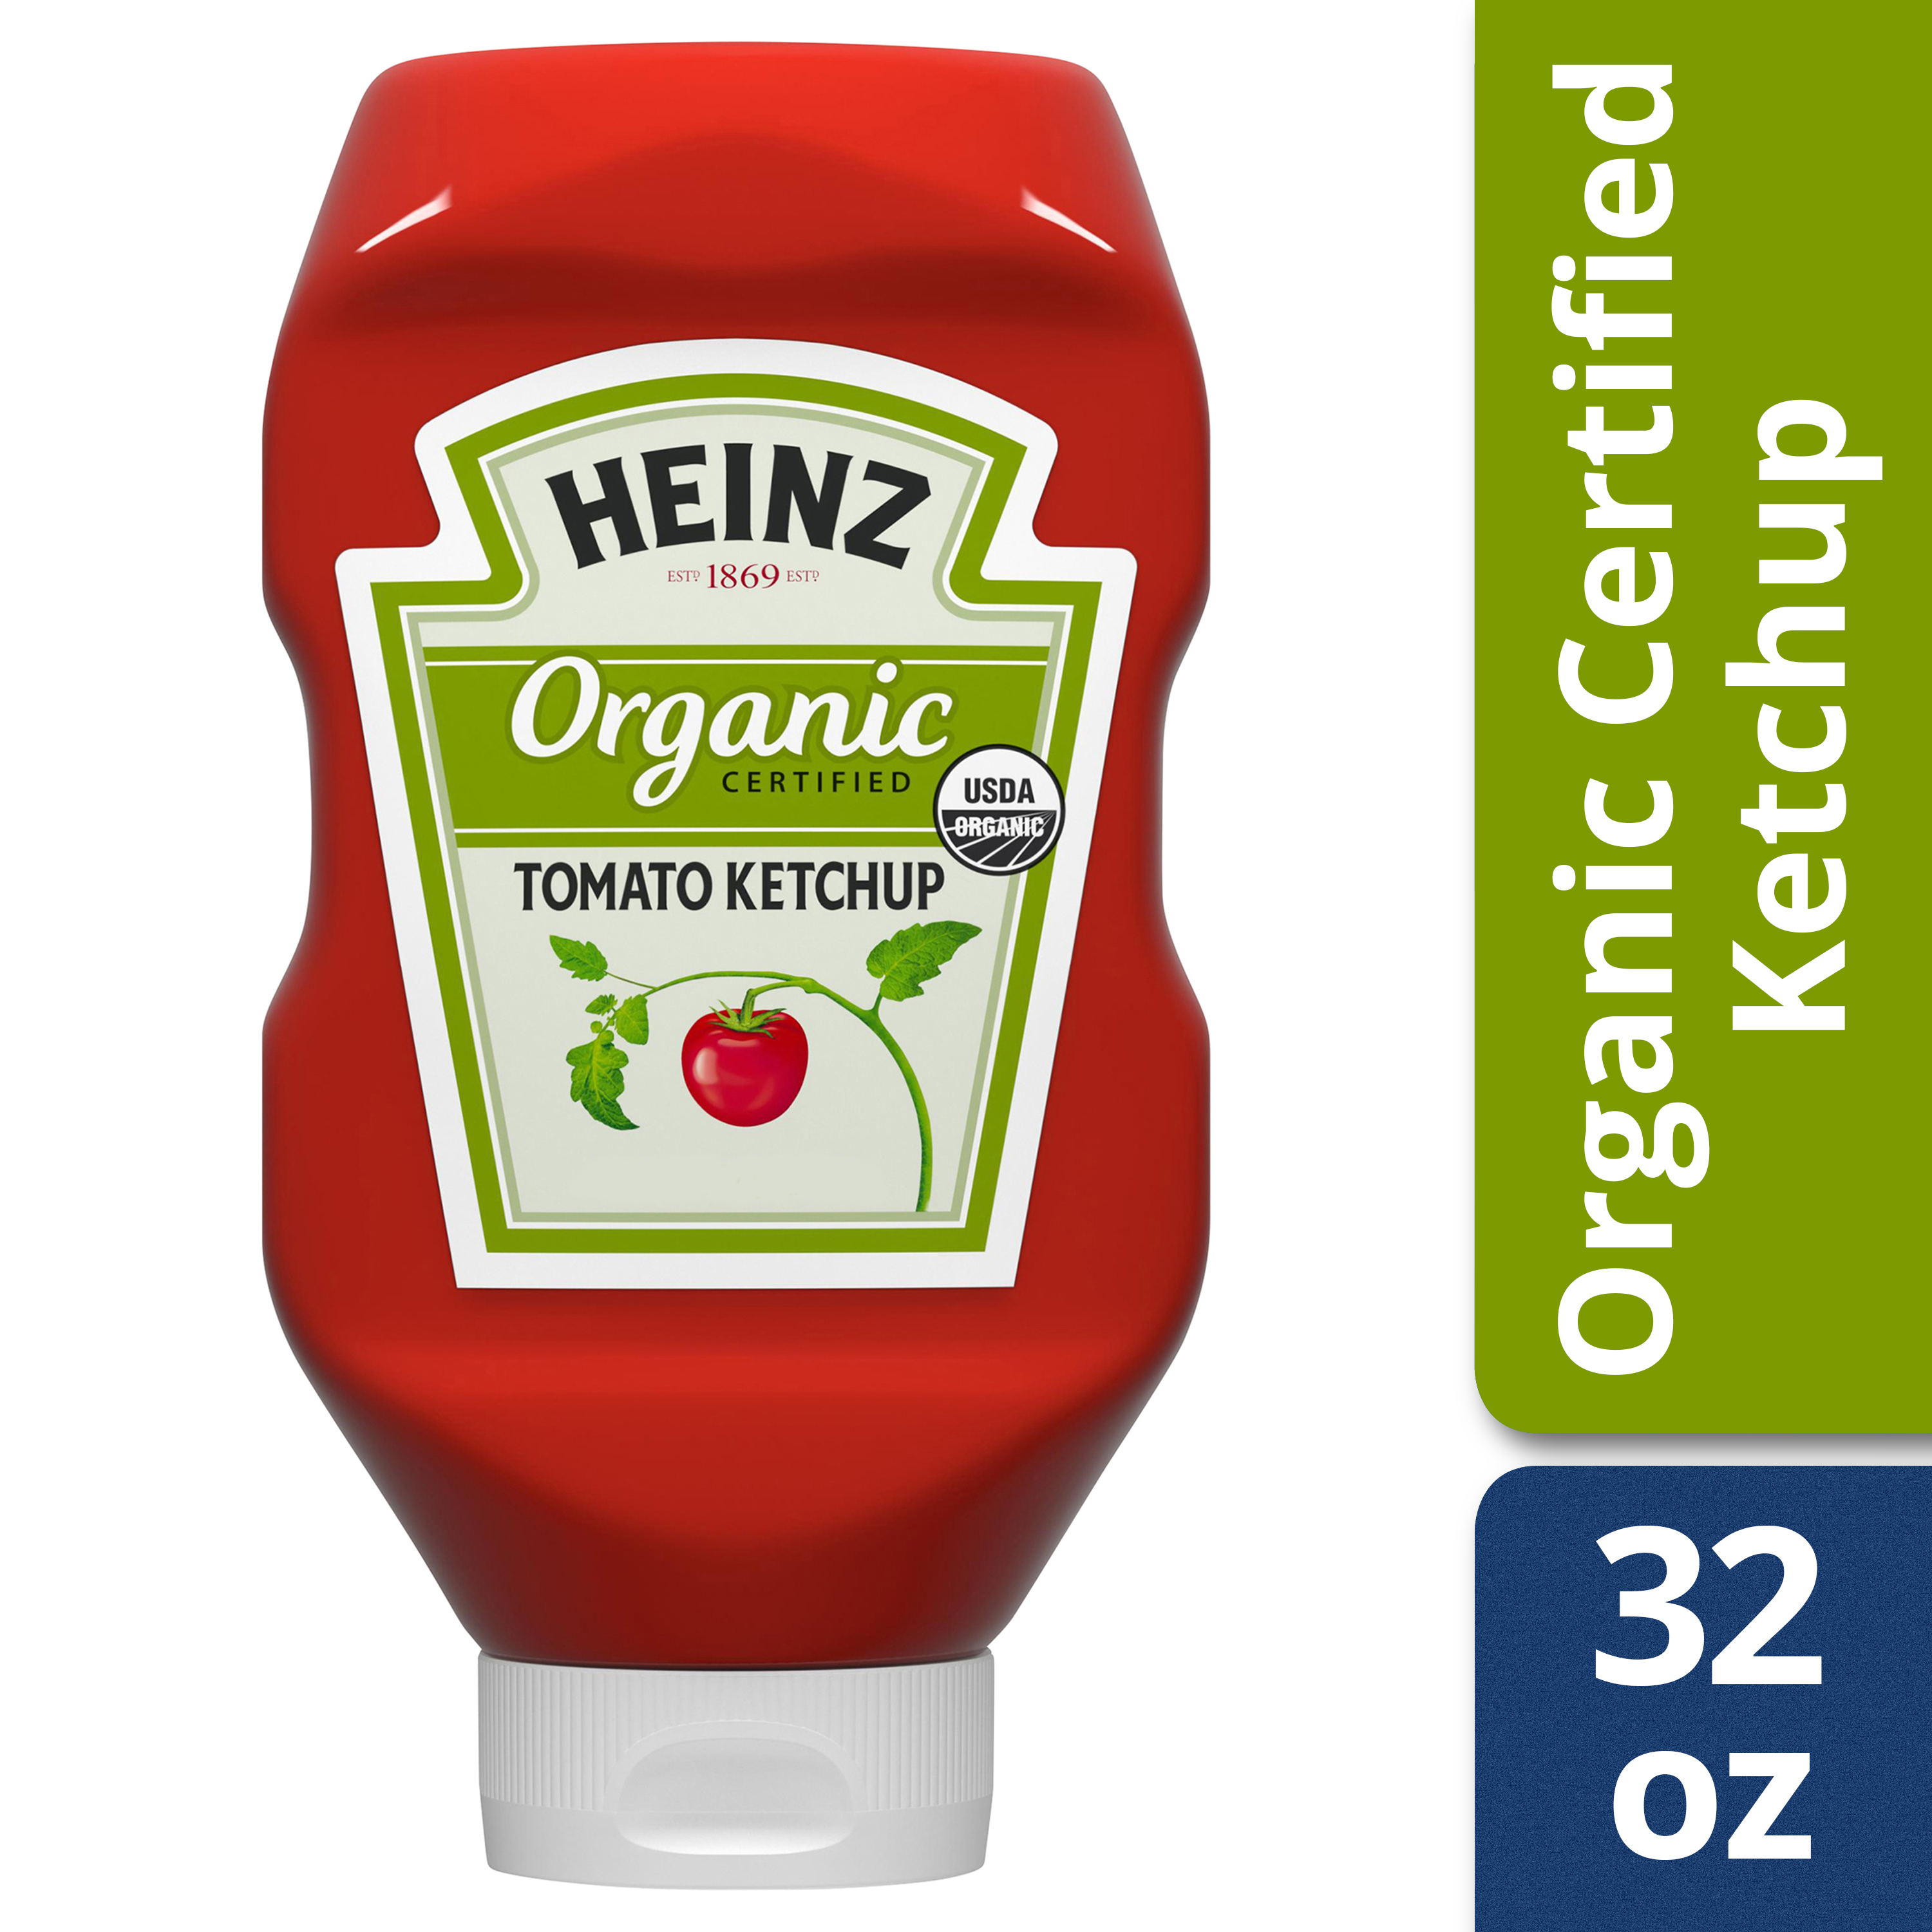 Heinz Organic Certified Tomato Ketchup 32 oz. Bottle